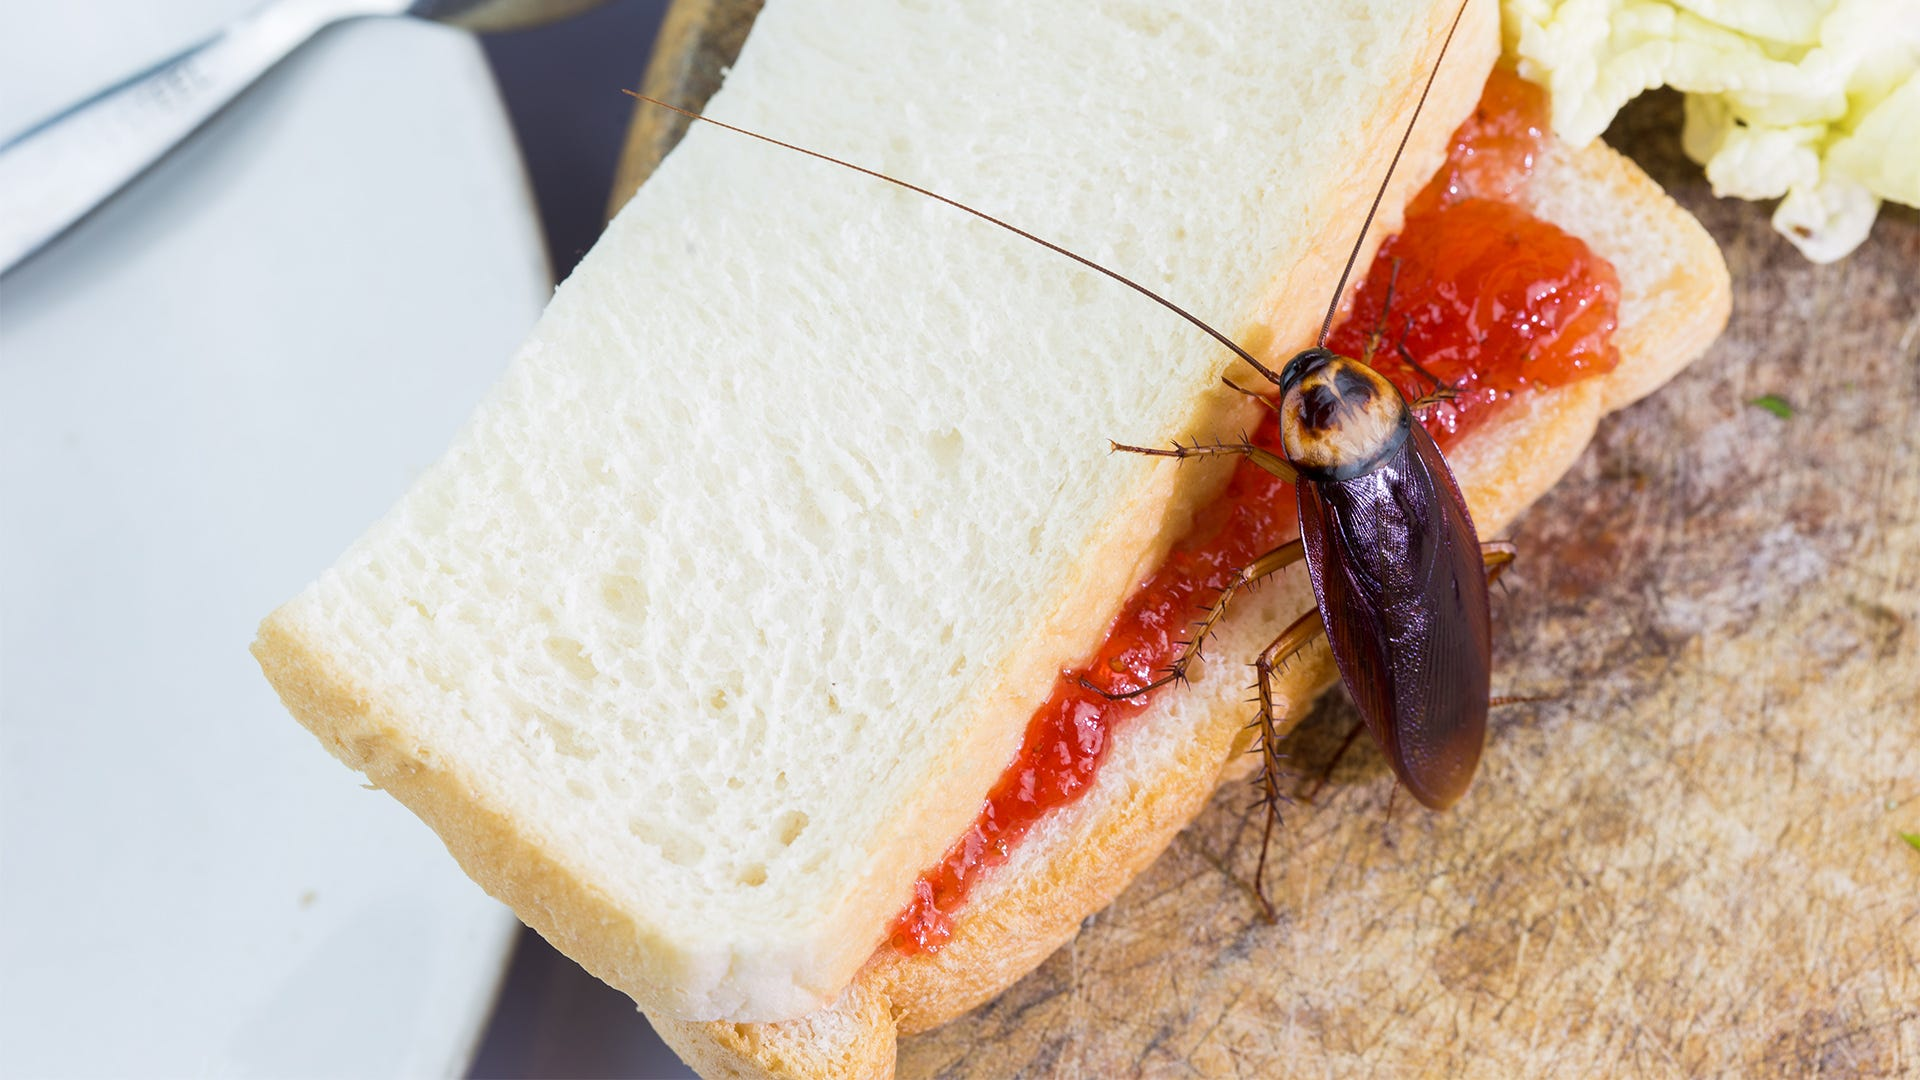 Why Do I Have Cockroaches in My Home?